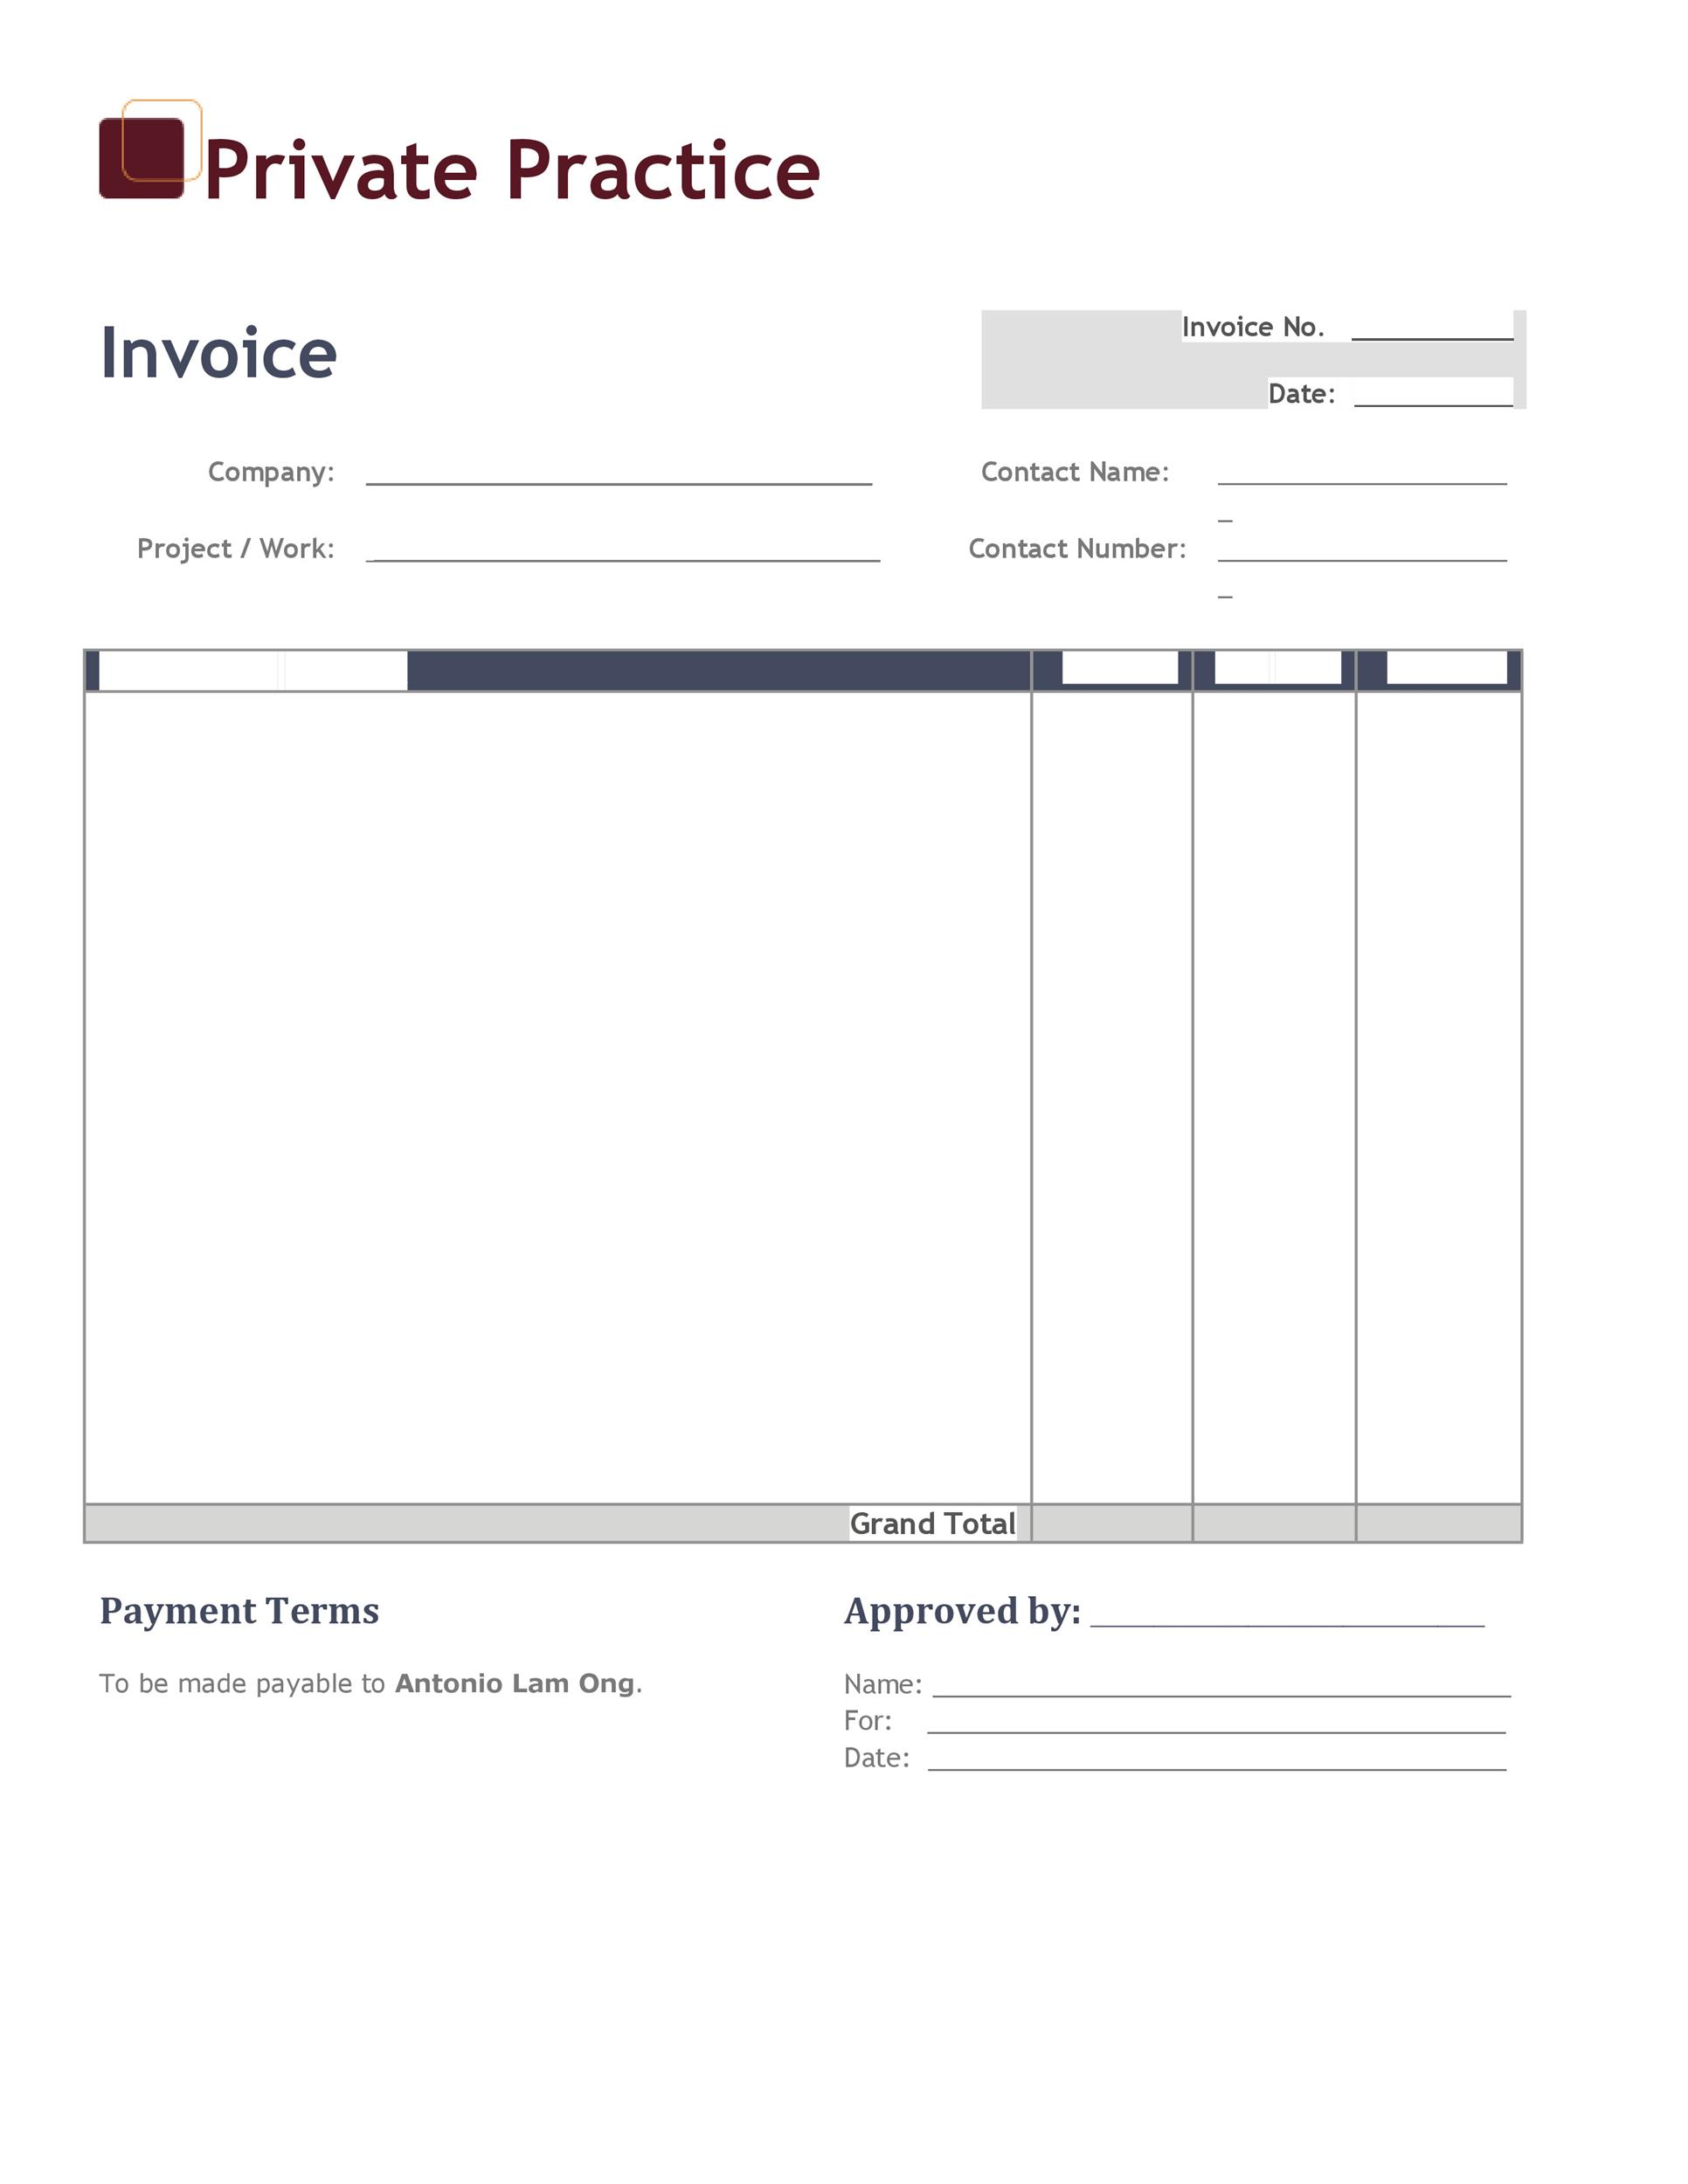 Invoice Templates Blank Commercial PDF Word Excel - Commercial invoice template download for service business